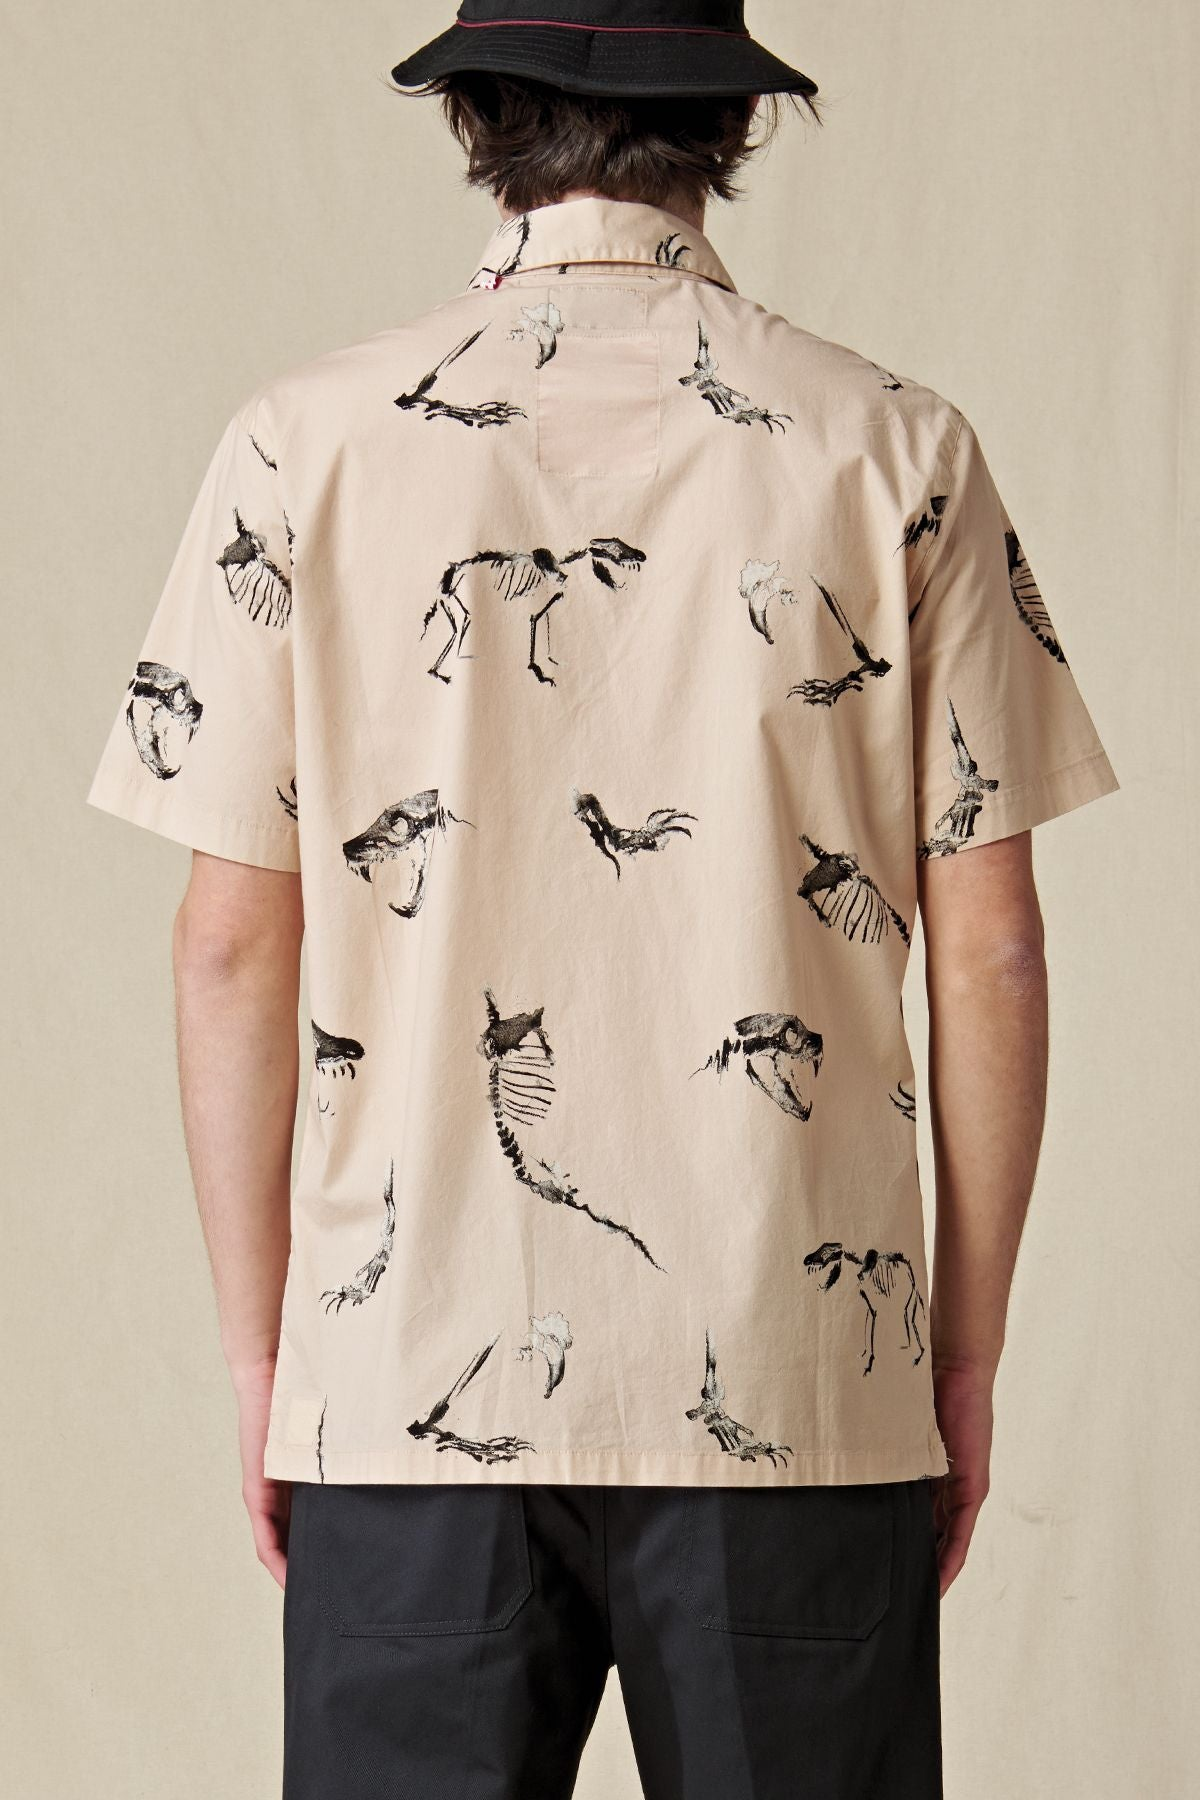 Globe_Dion_Agius_Tasi_Short_Sleeved_Shirt_2021_3